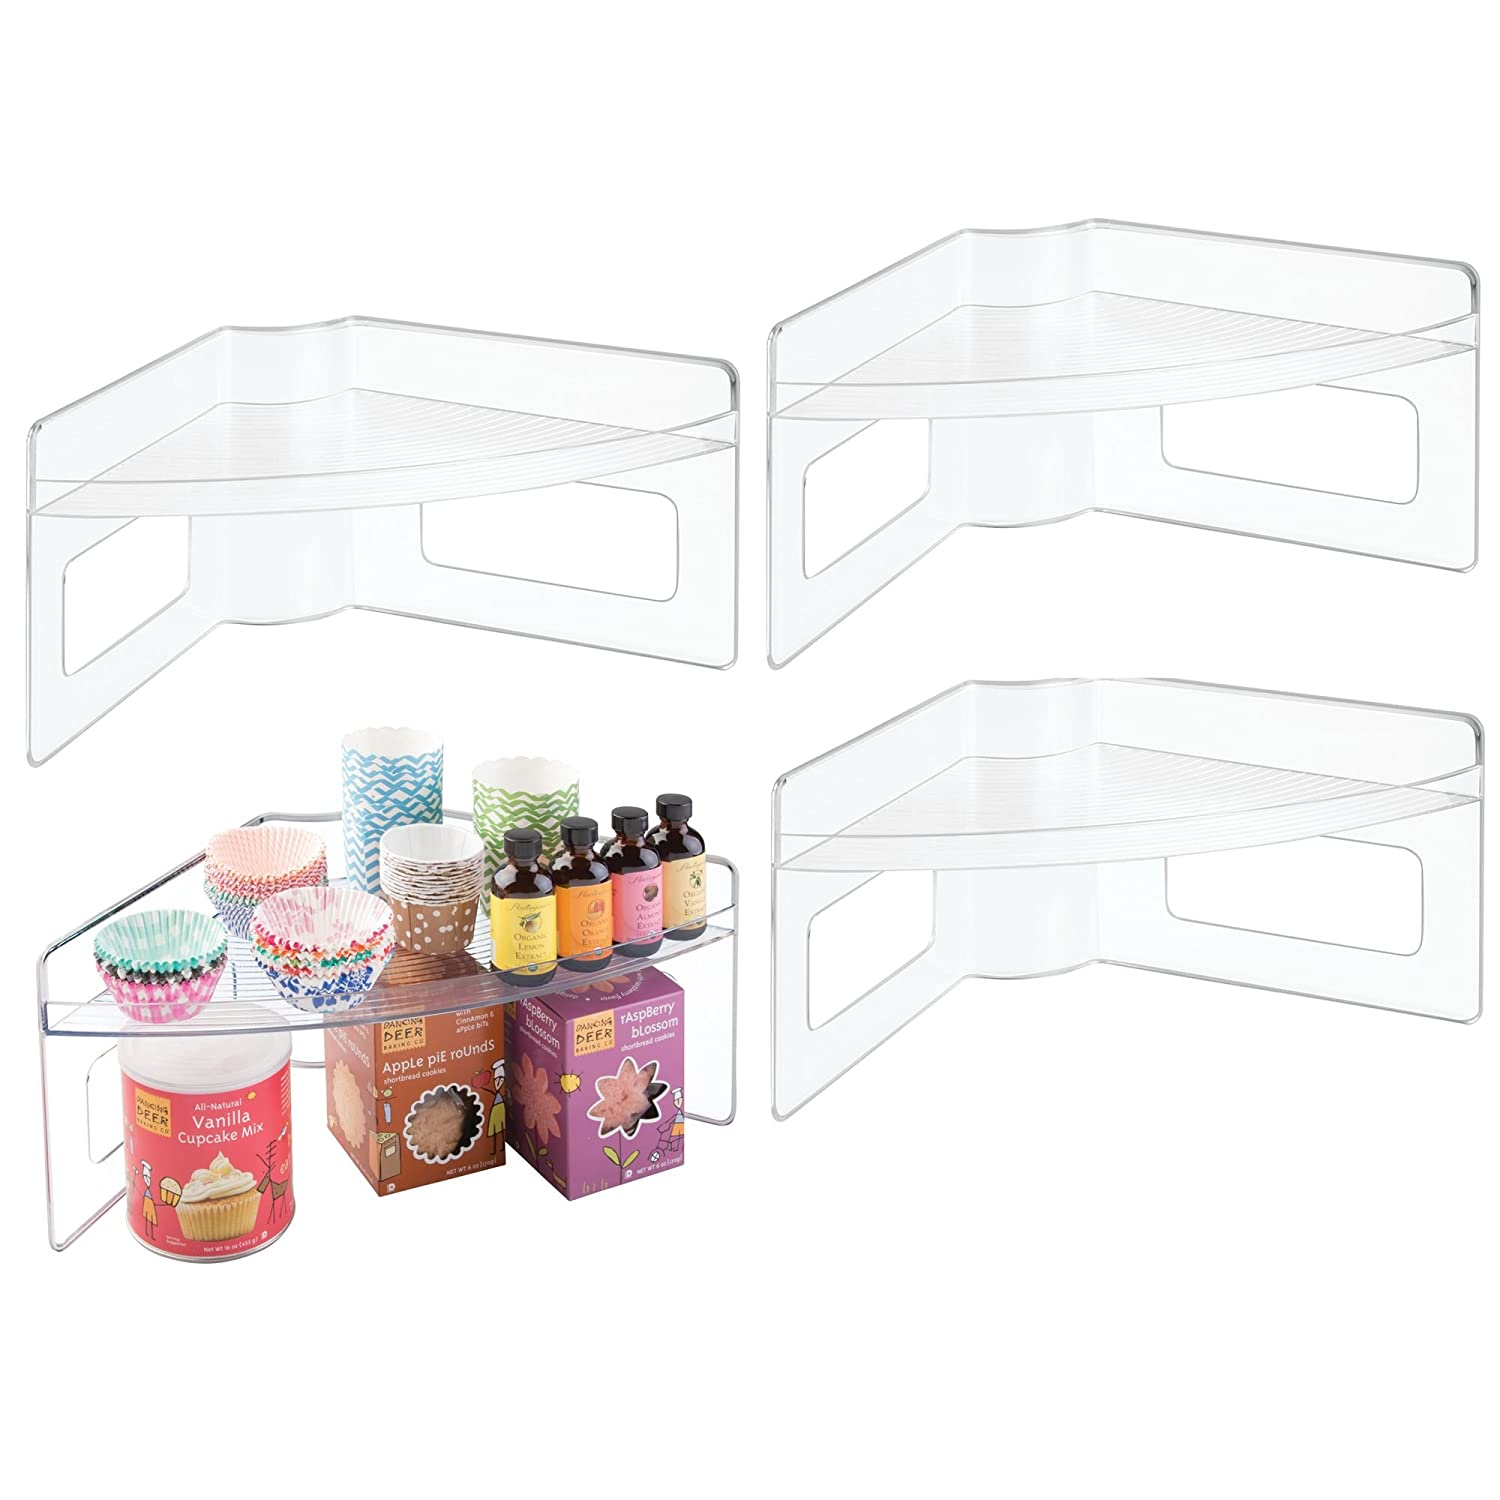 mDesign Lazy Susan Storage Shelf with Handles for Kitchen Cabinets, Pantry - Pack of 2, Clear MetroDecor 4773MDK